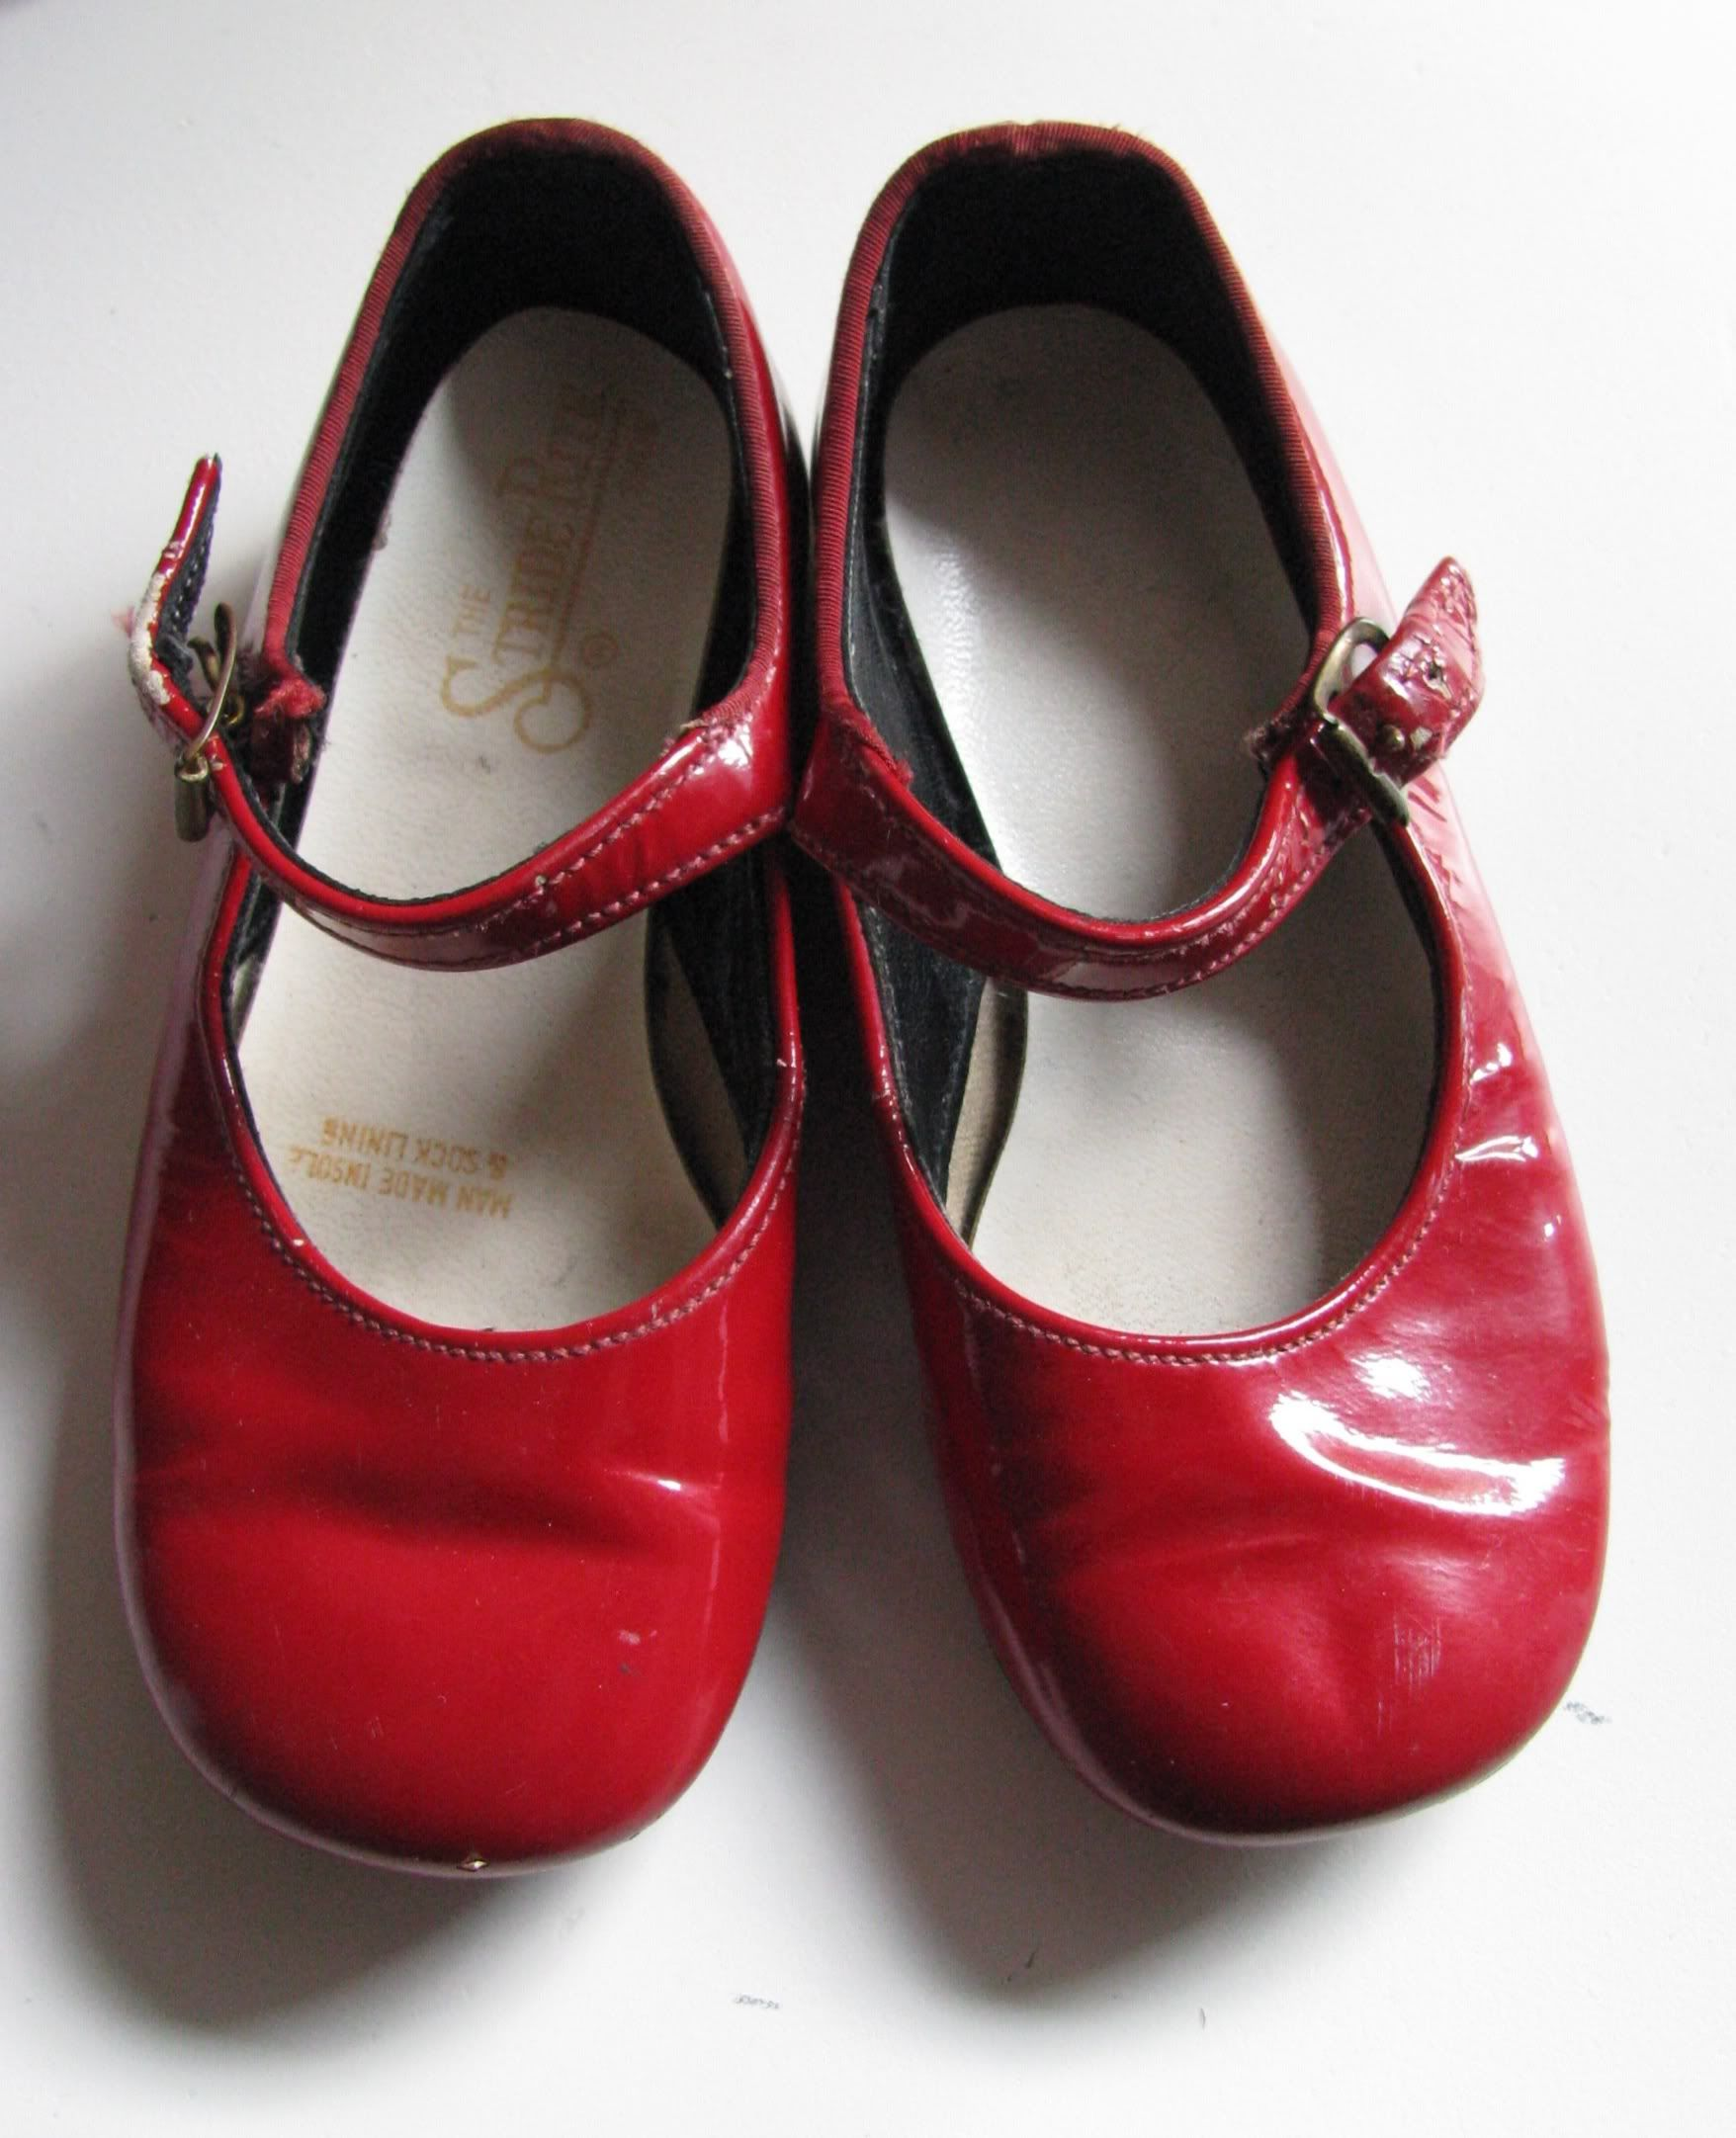 31 best ideas about red shoes on Pinterest   Pump, Dr. oz and Prada